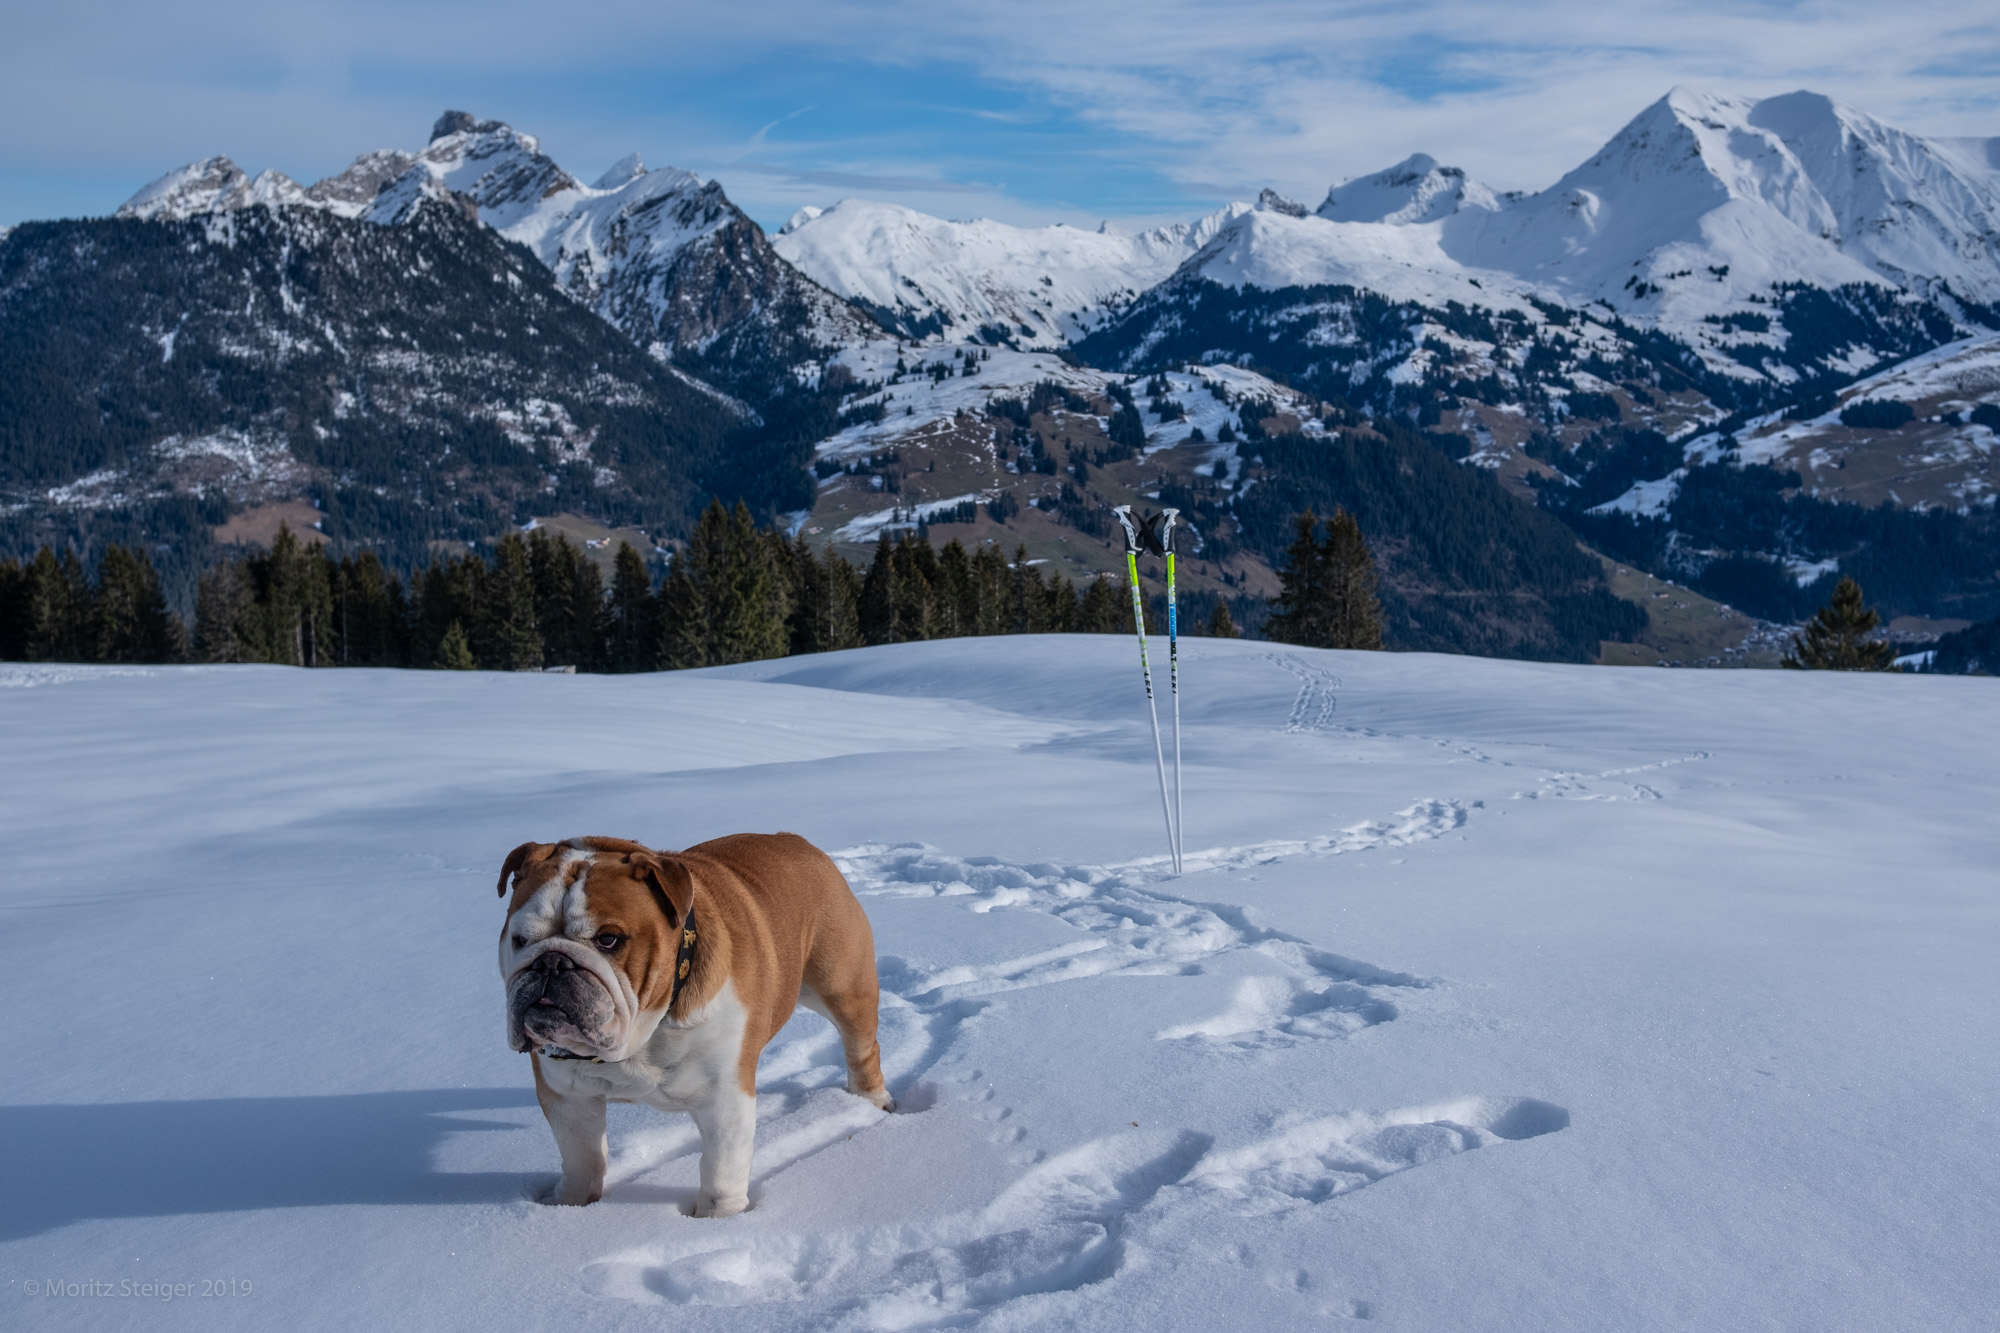 """Are you comin'?"" Rudy bulldog in snow covered mountains, Switzerland"